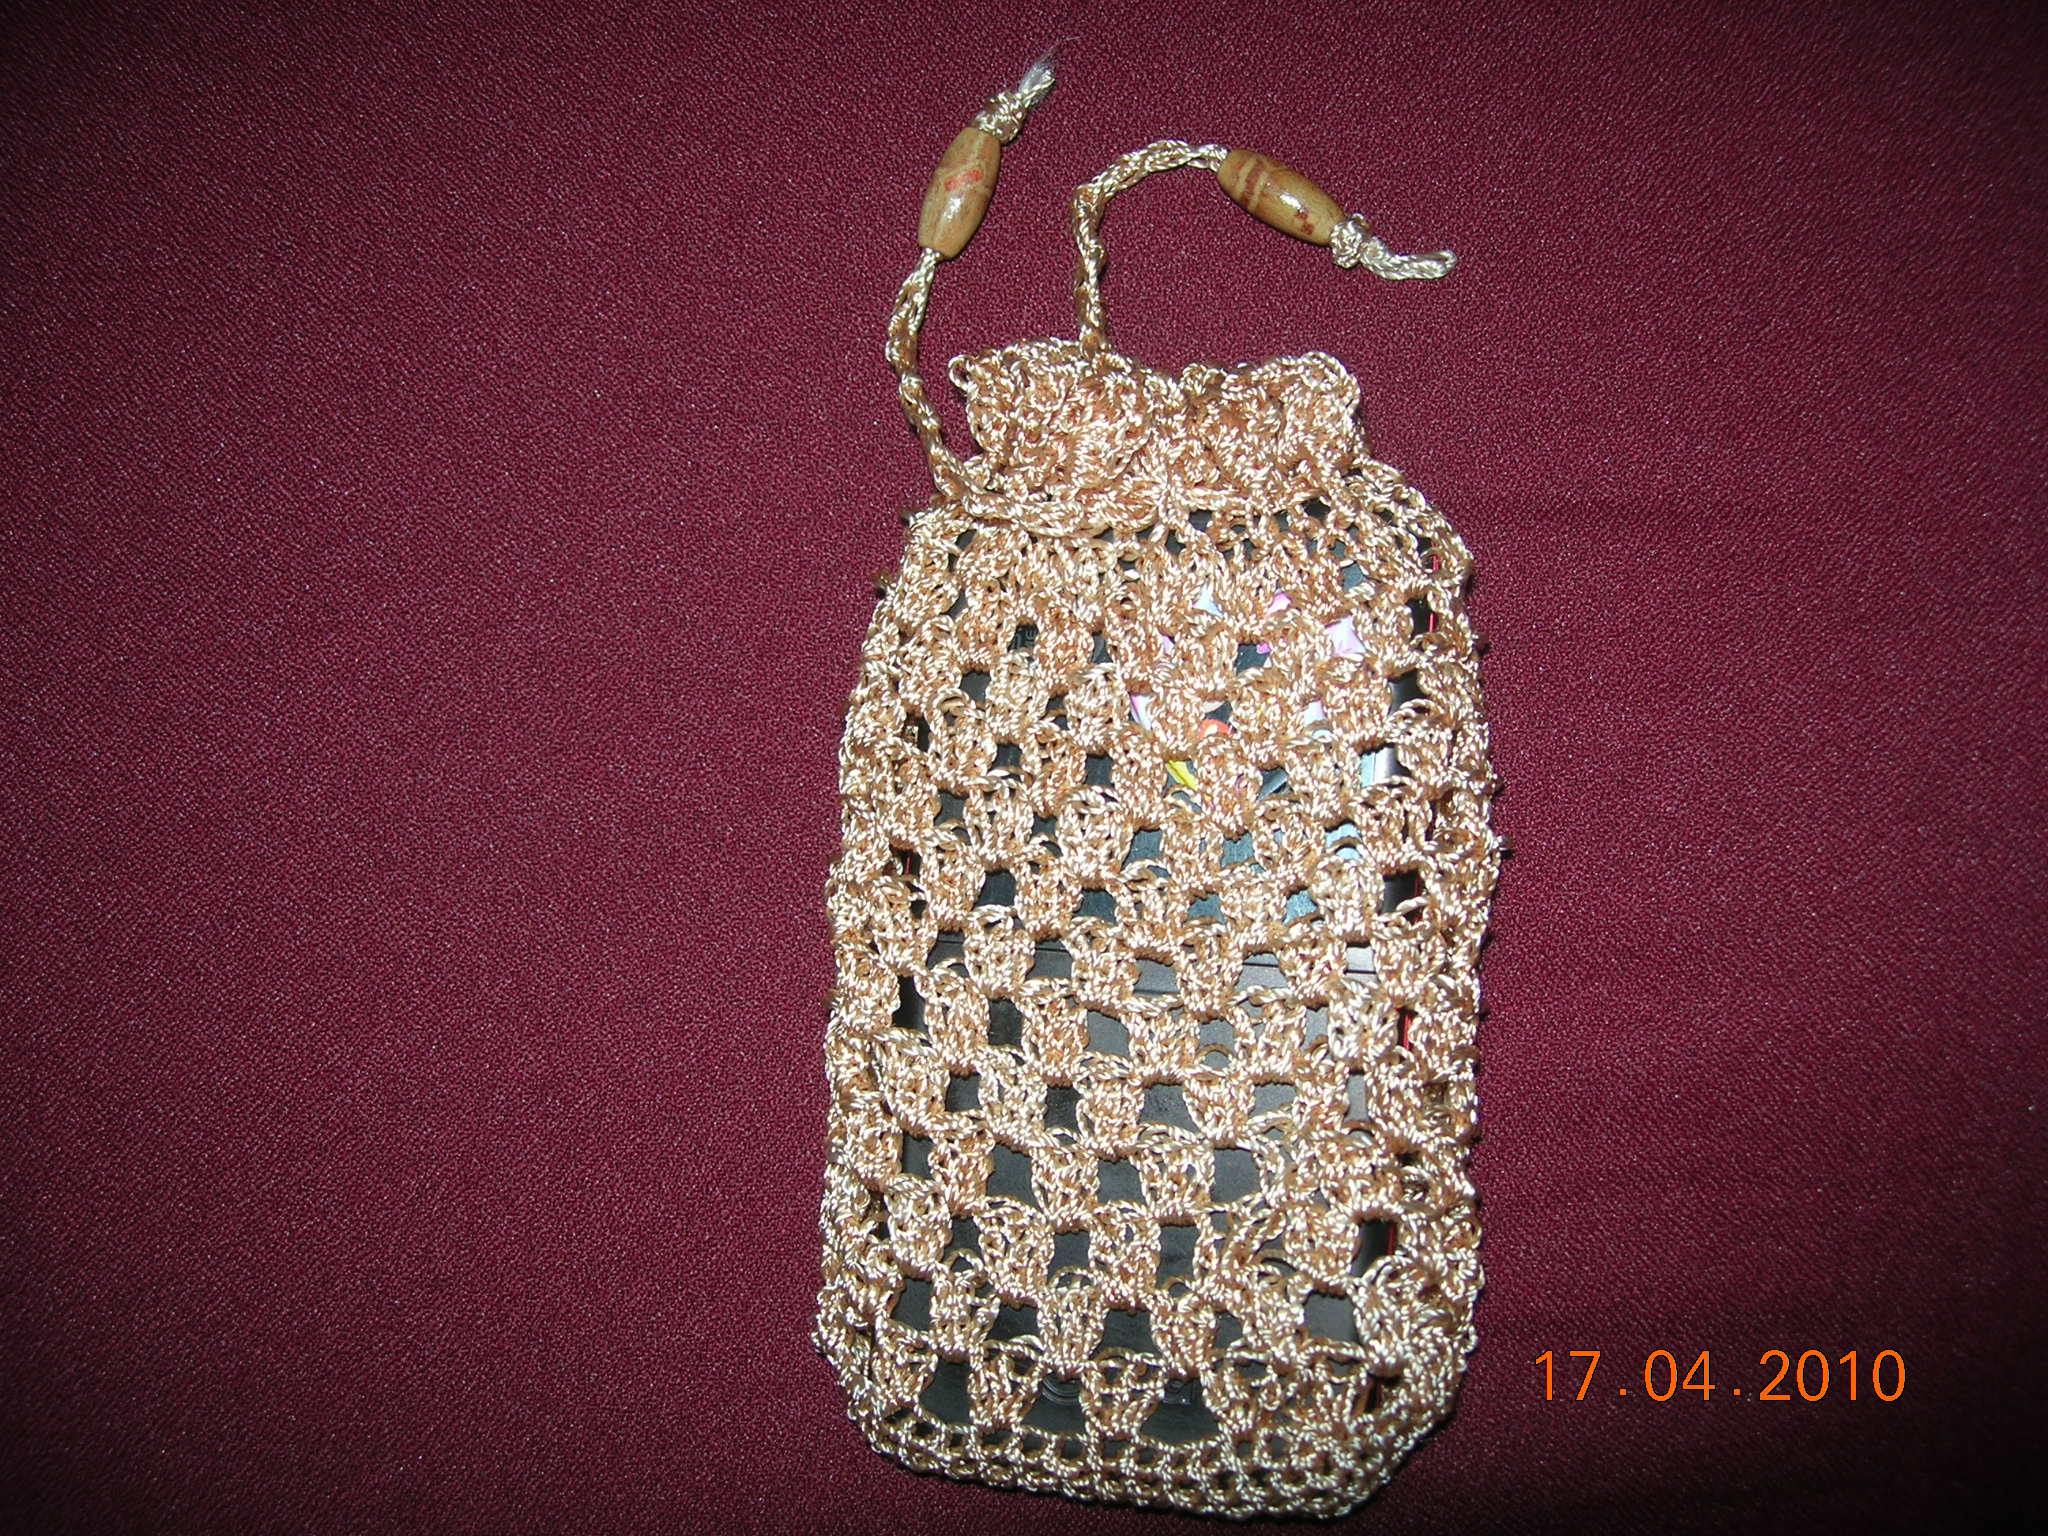 Crocheted pouch for your mobile